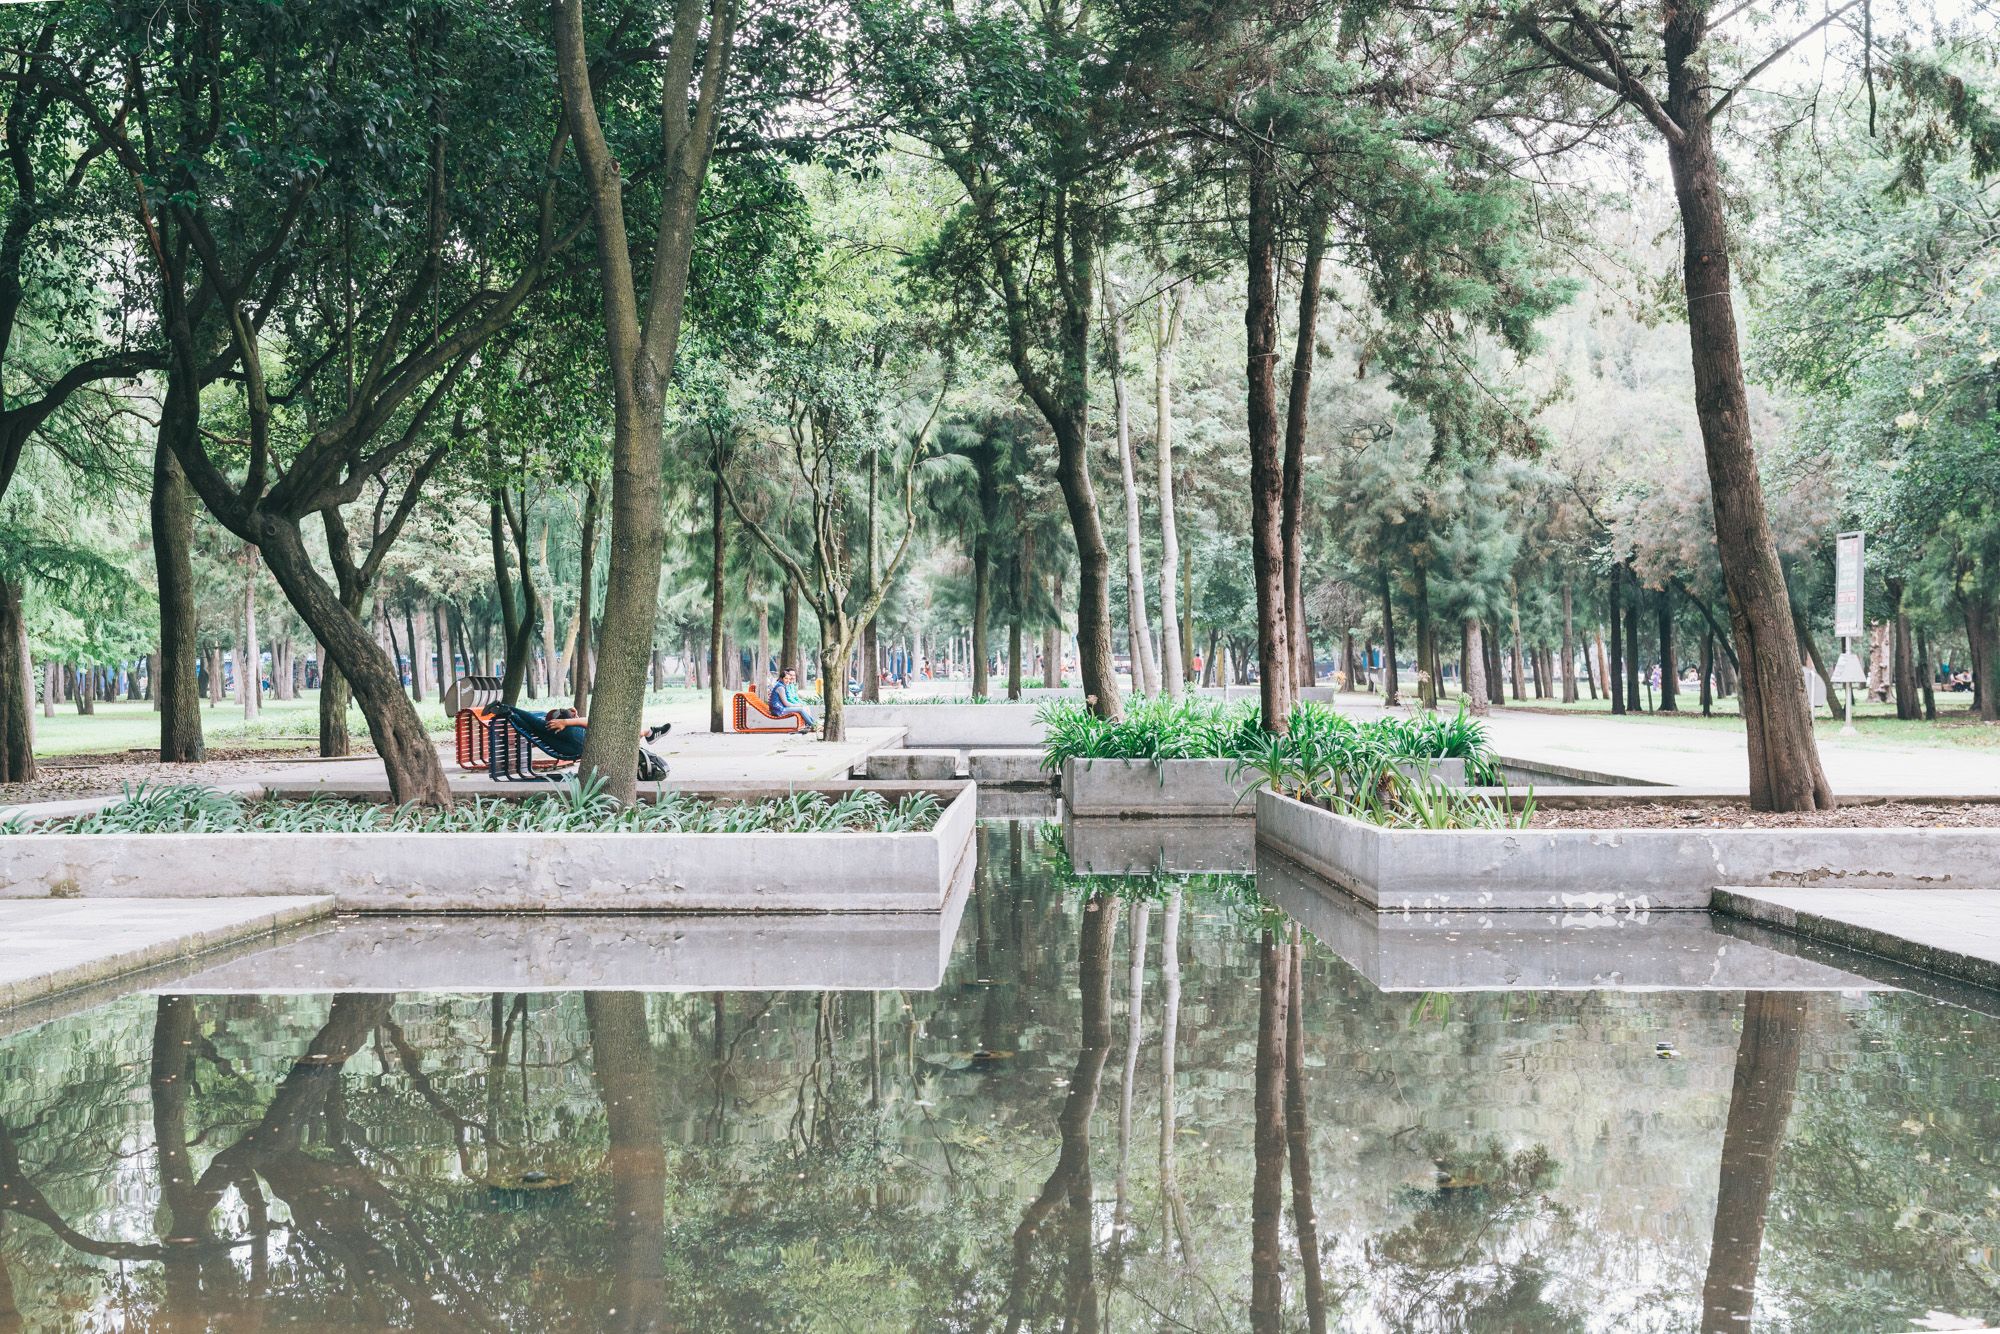 A Small part of the massive Chapultepek Park